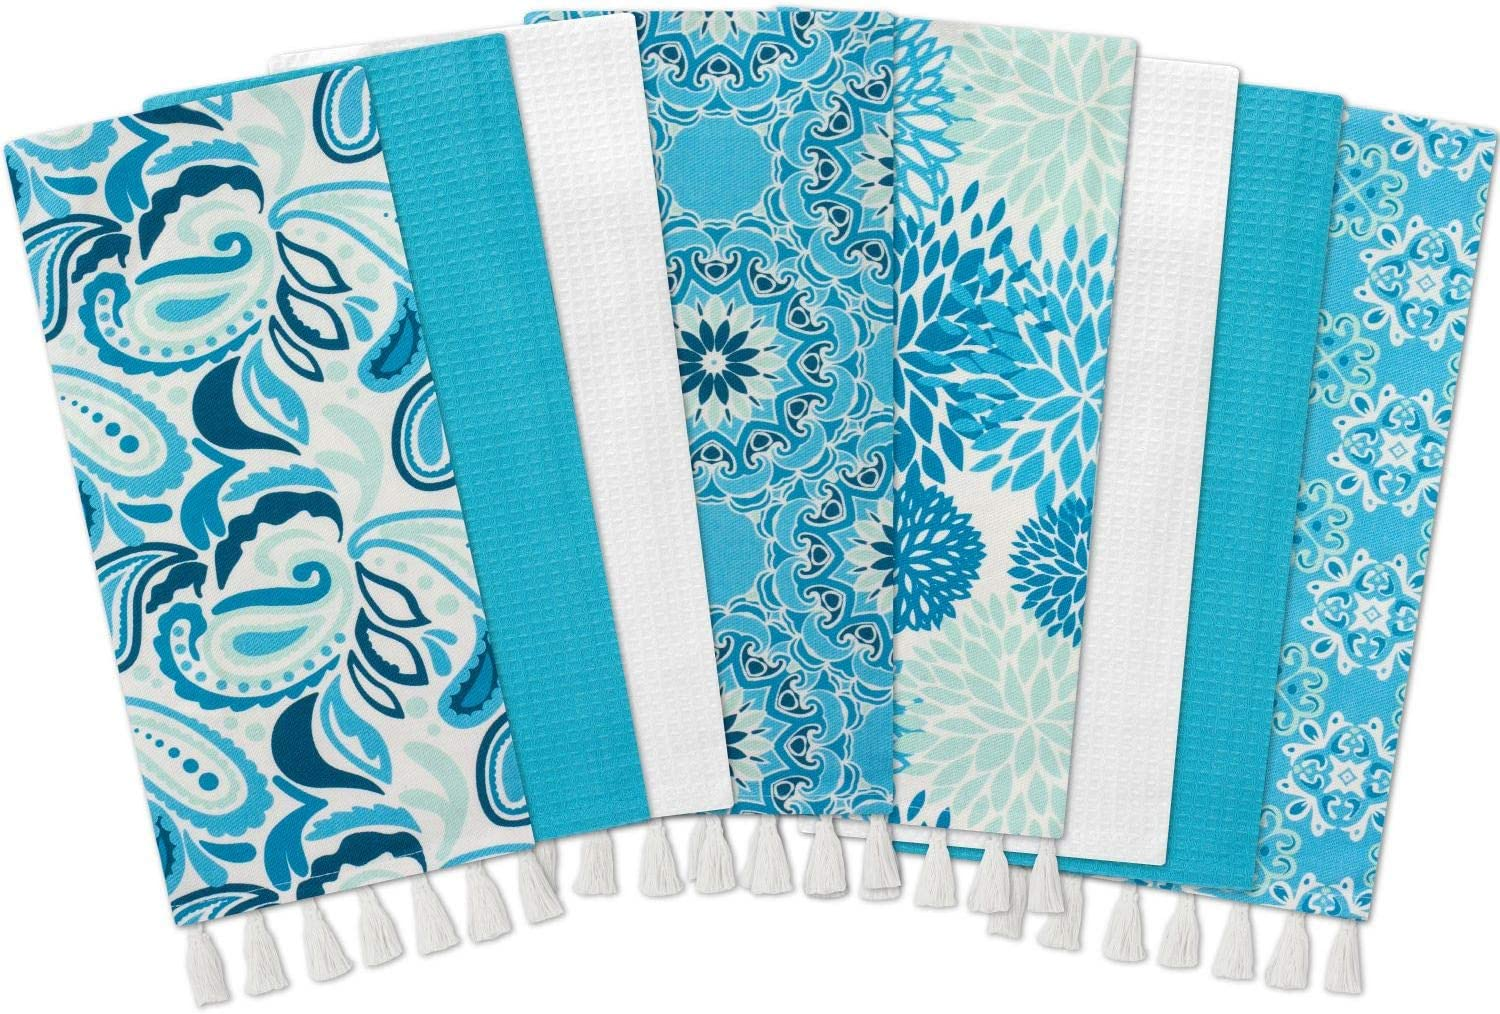 Gourmet Club Flat Woven Phrase Kitchen Towels 8-Pack